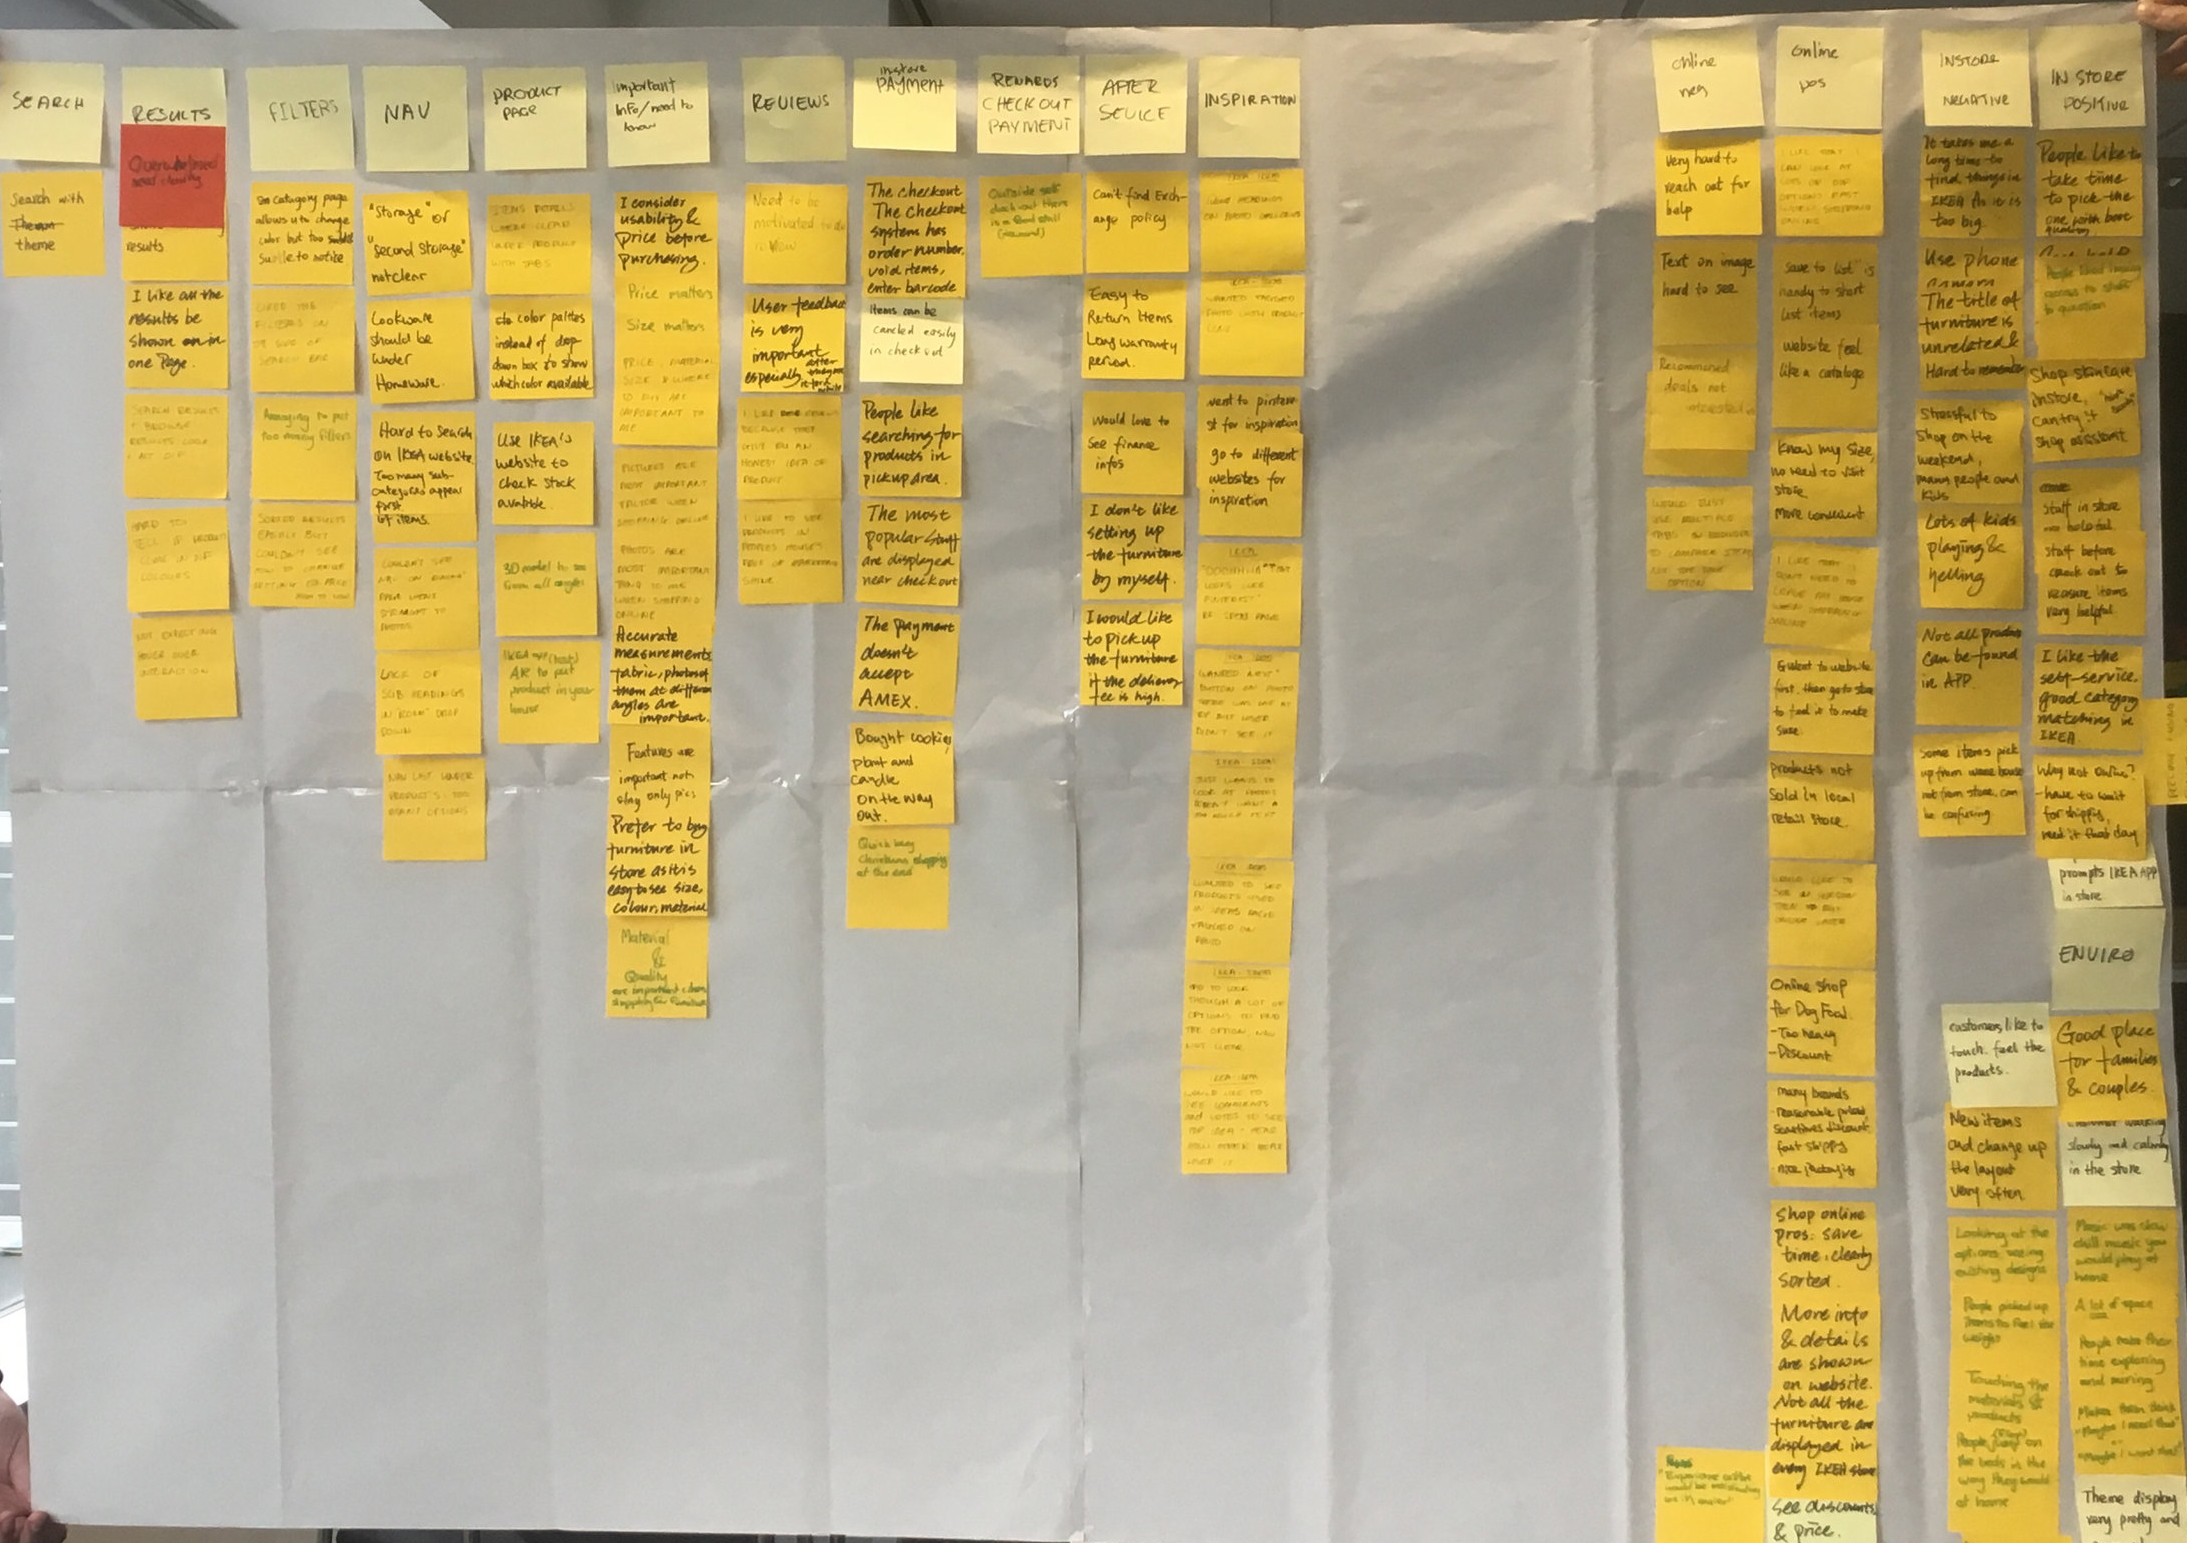 The Affinity Map we created